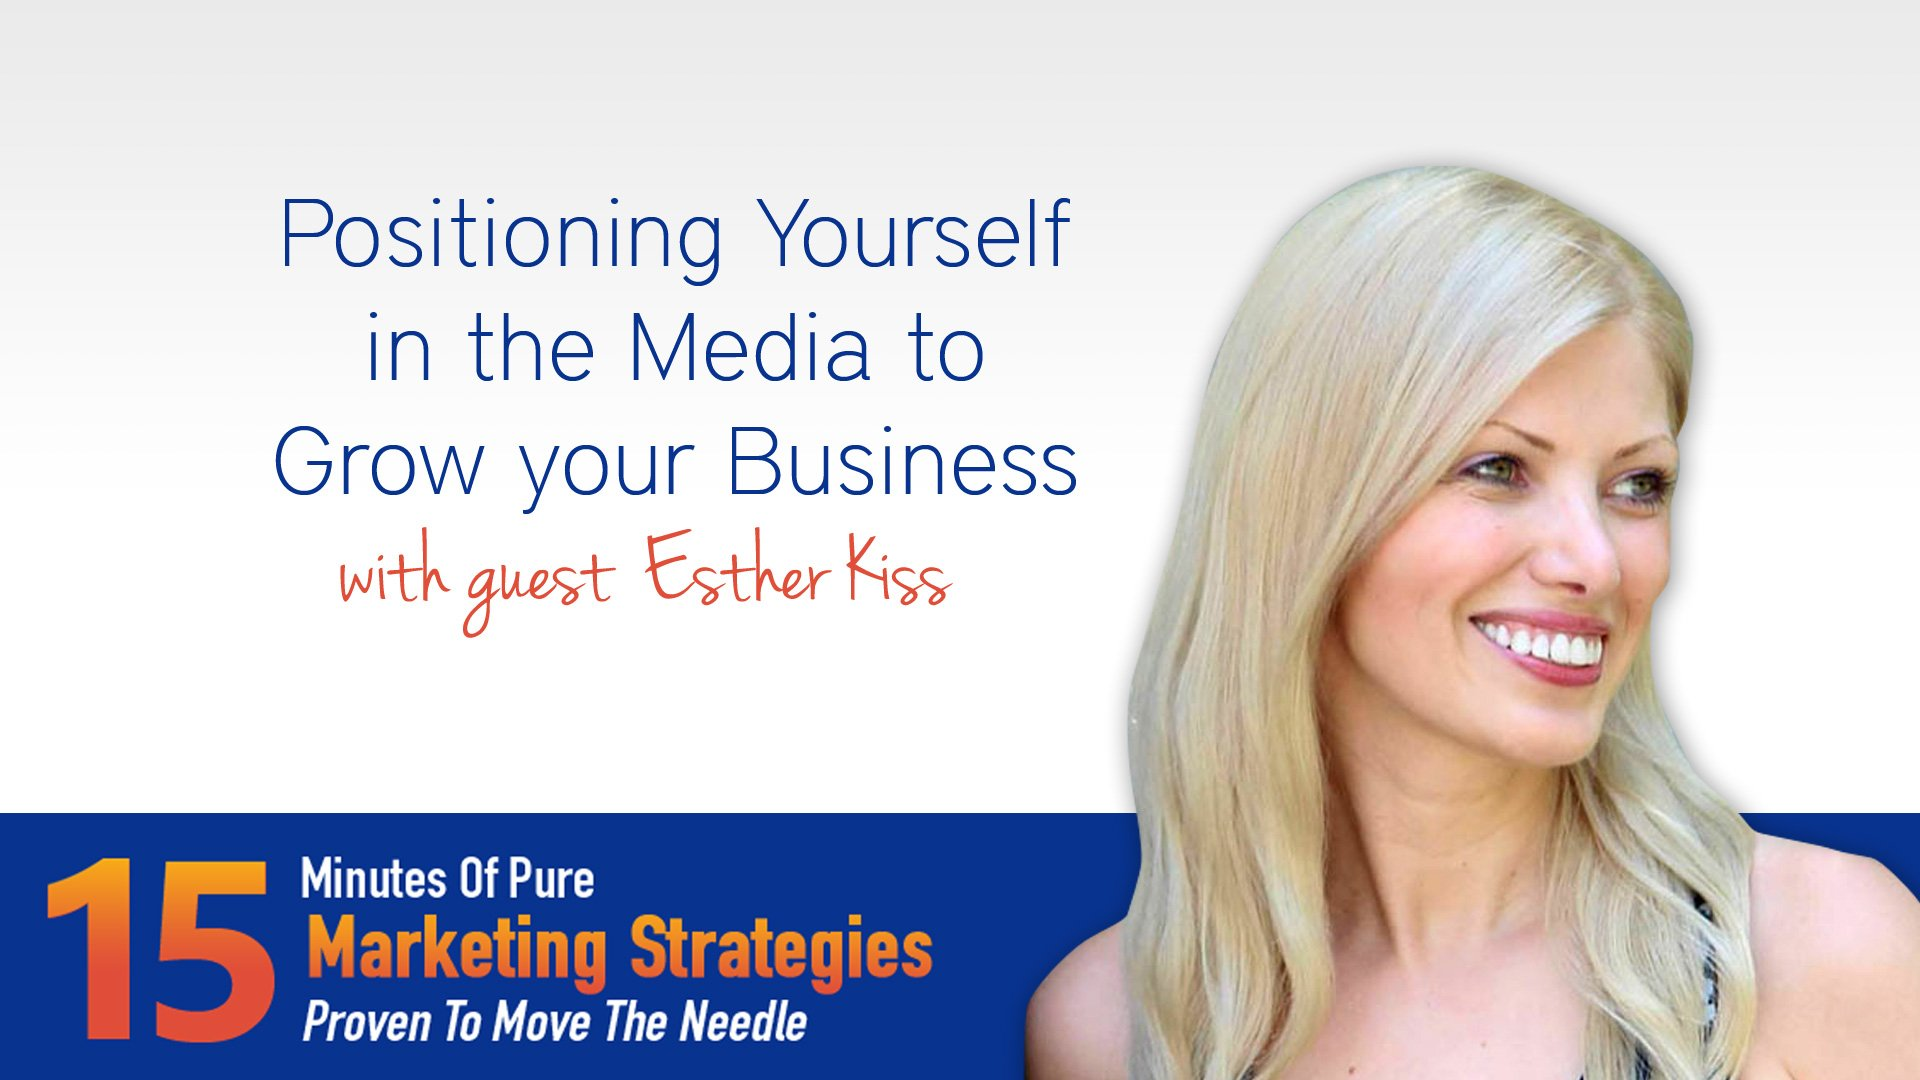 Positioning Yourself in the Media to Grow Your Business